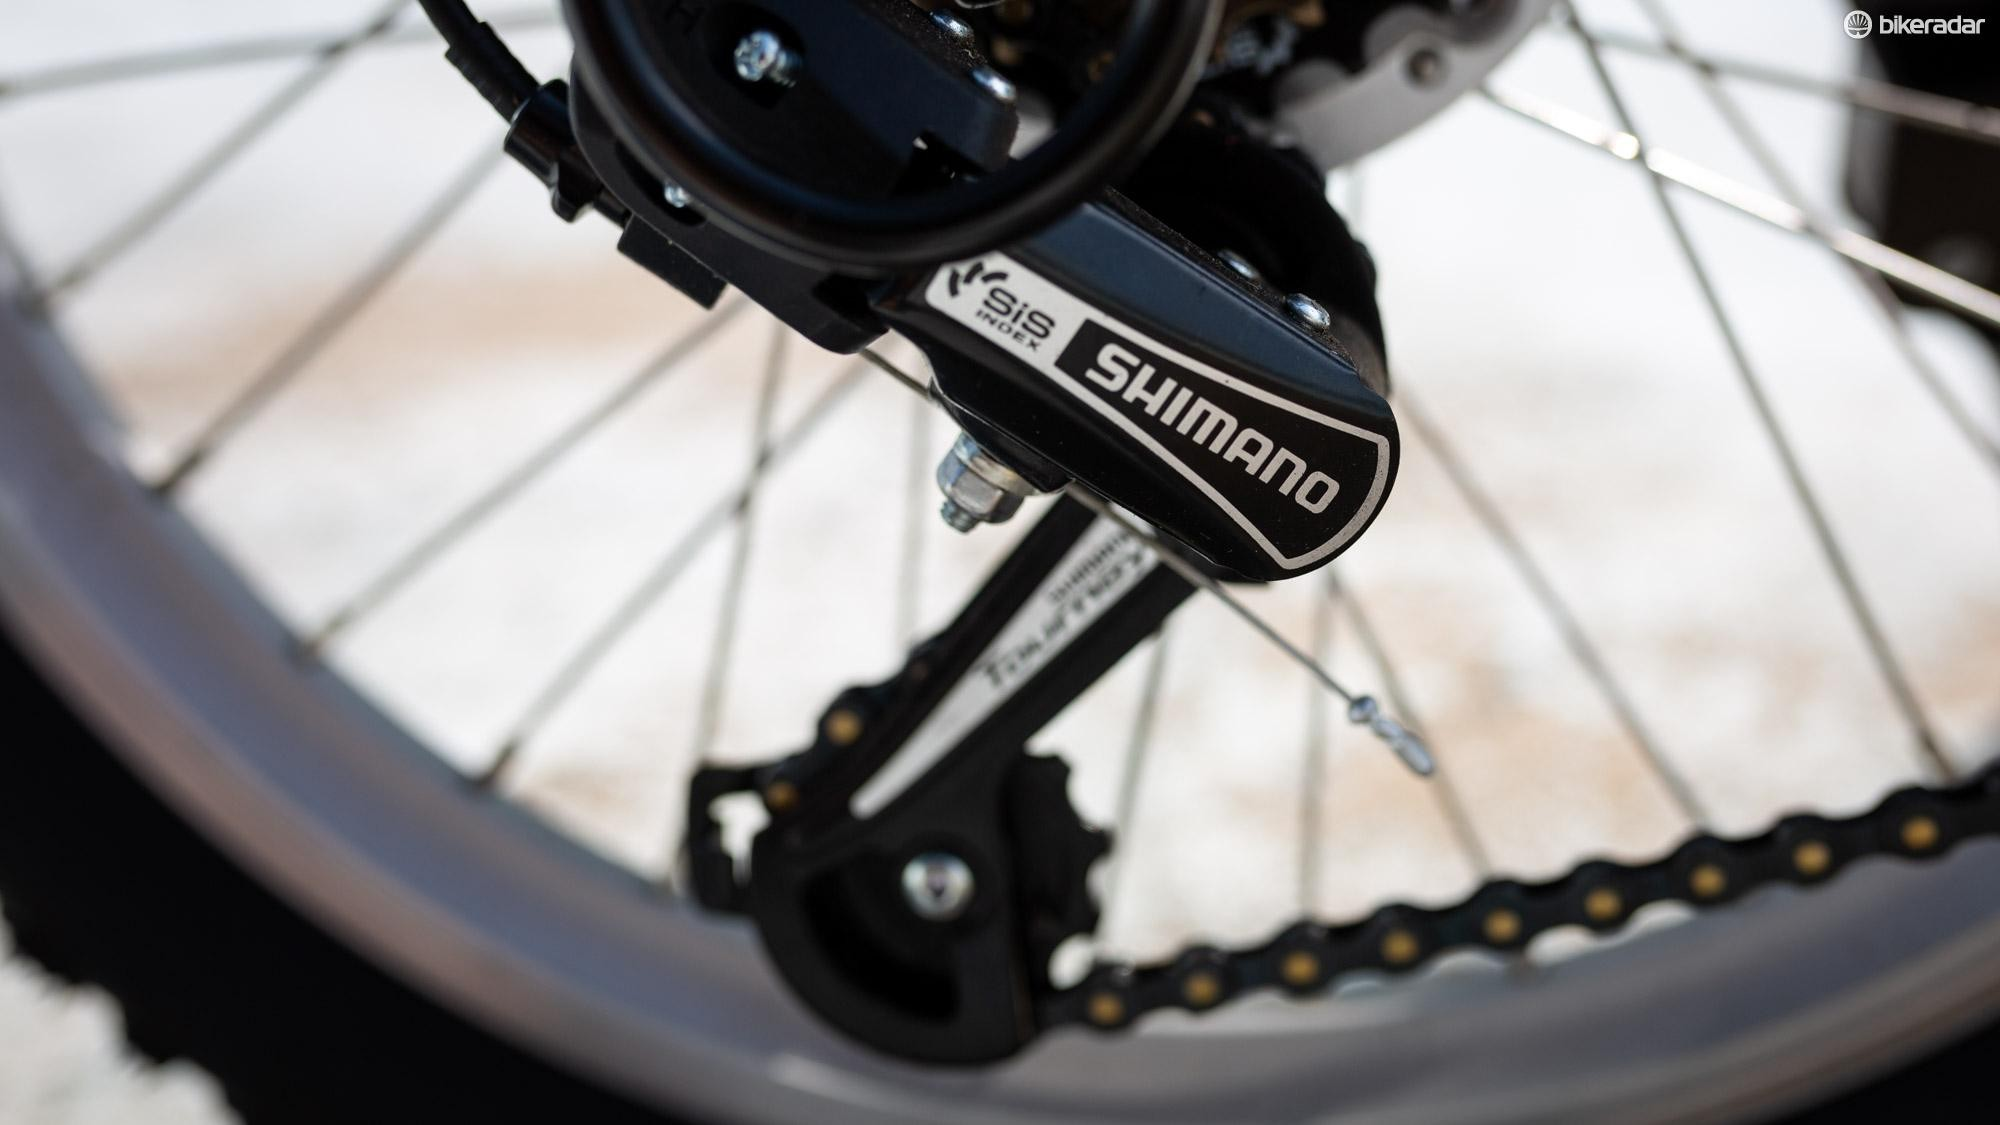 It's a pleasant surprise to see Shimano branded components on a supermarket bike